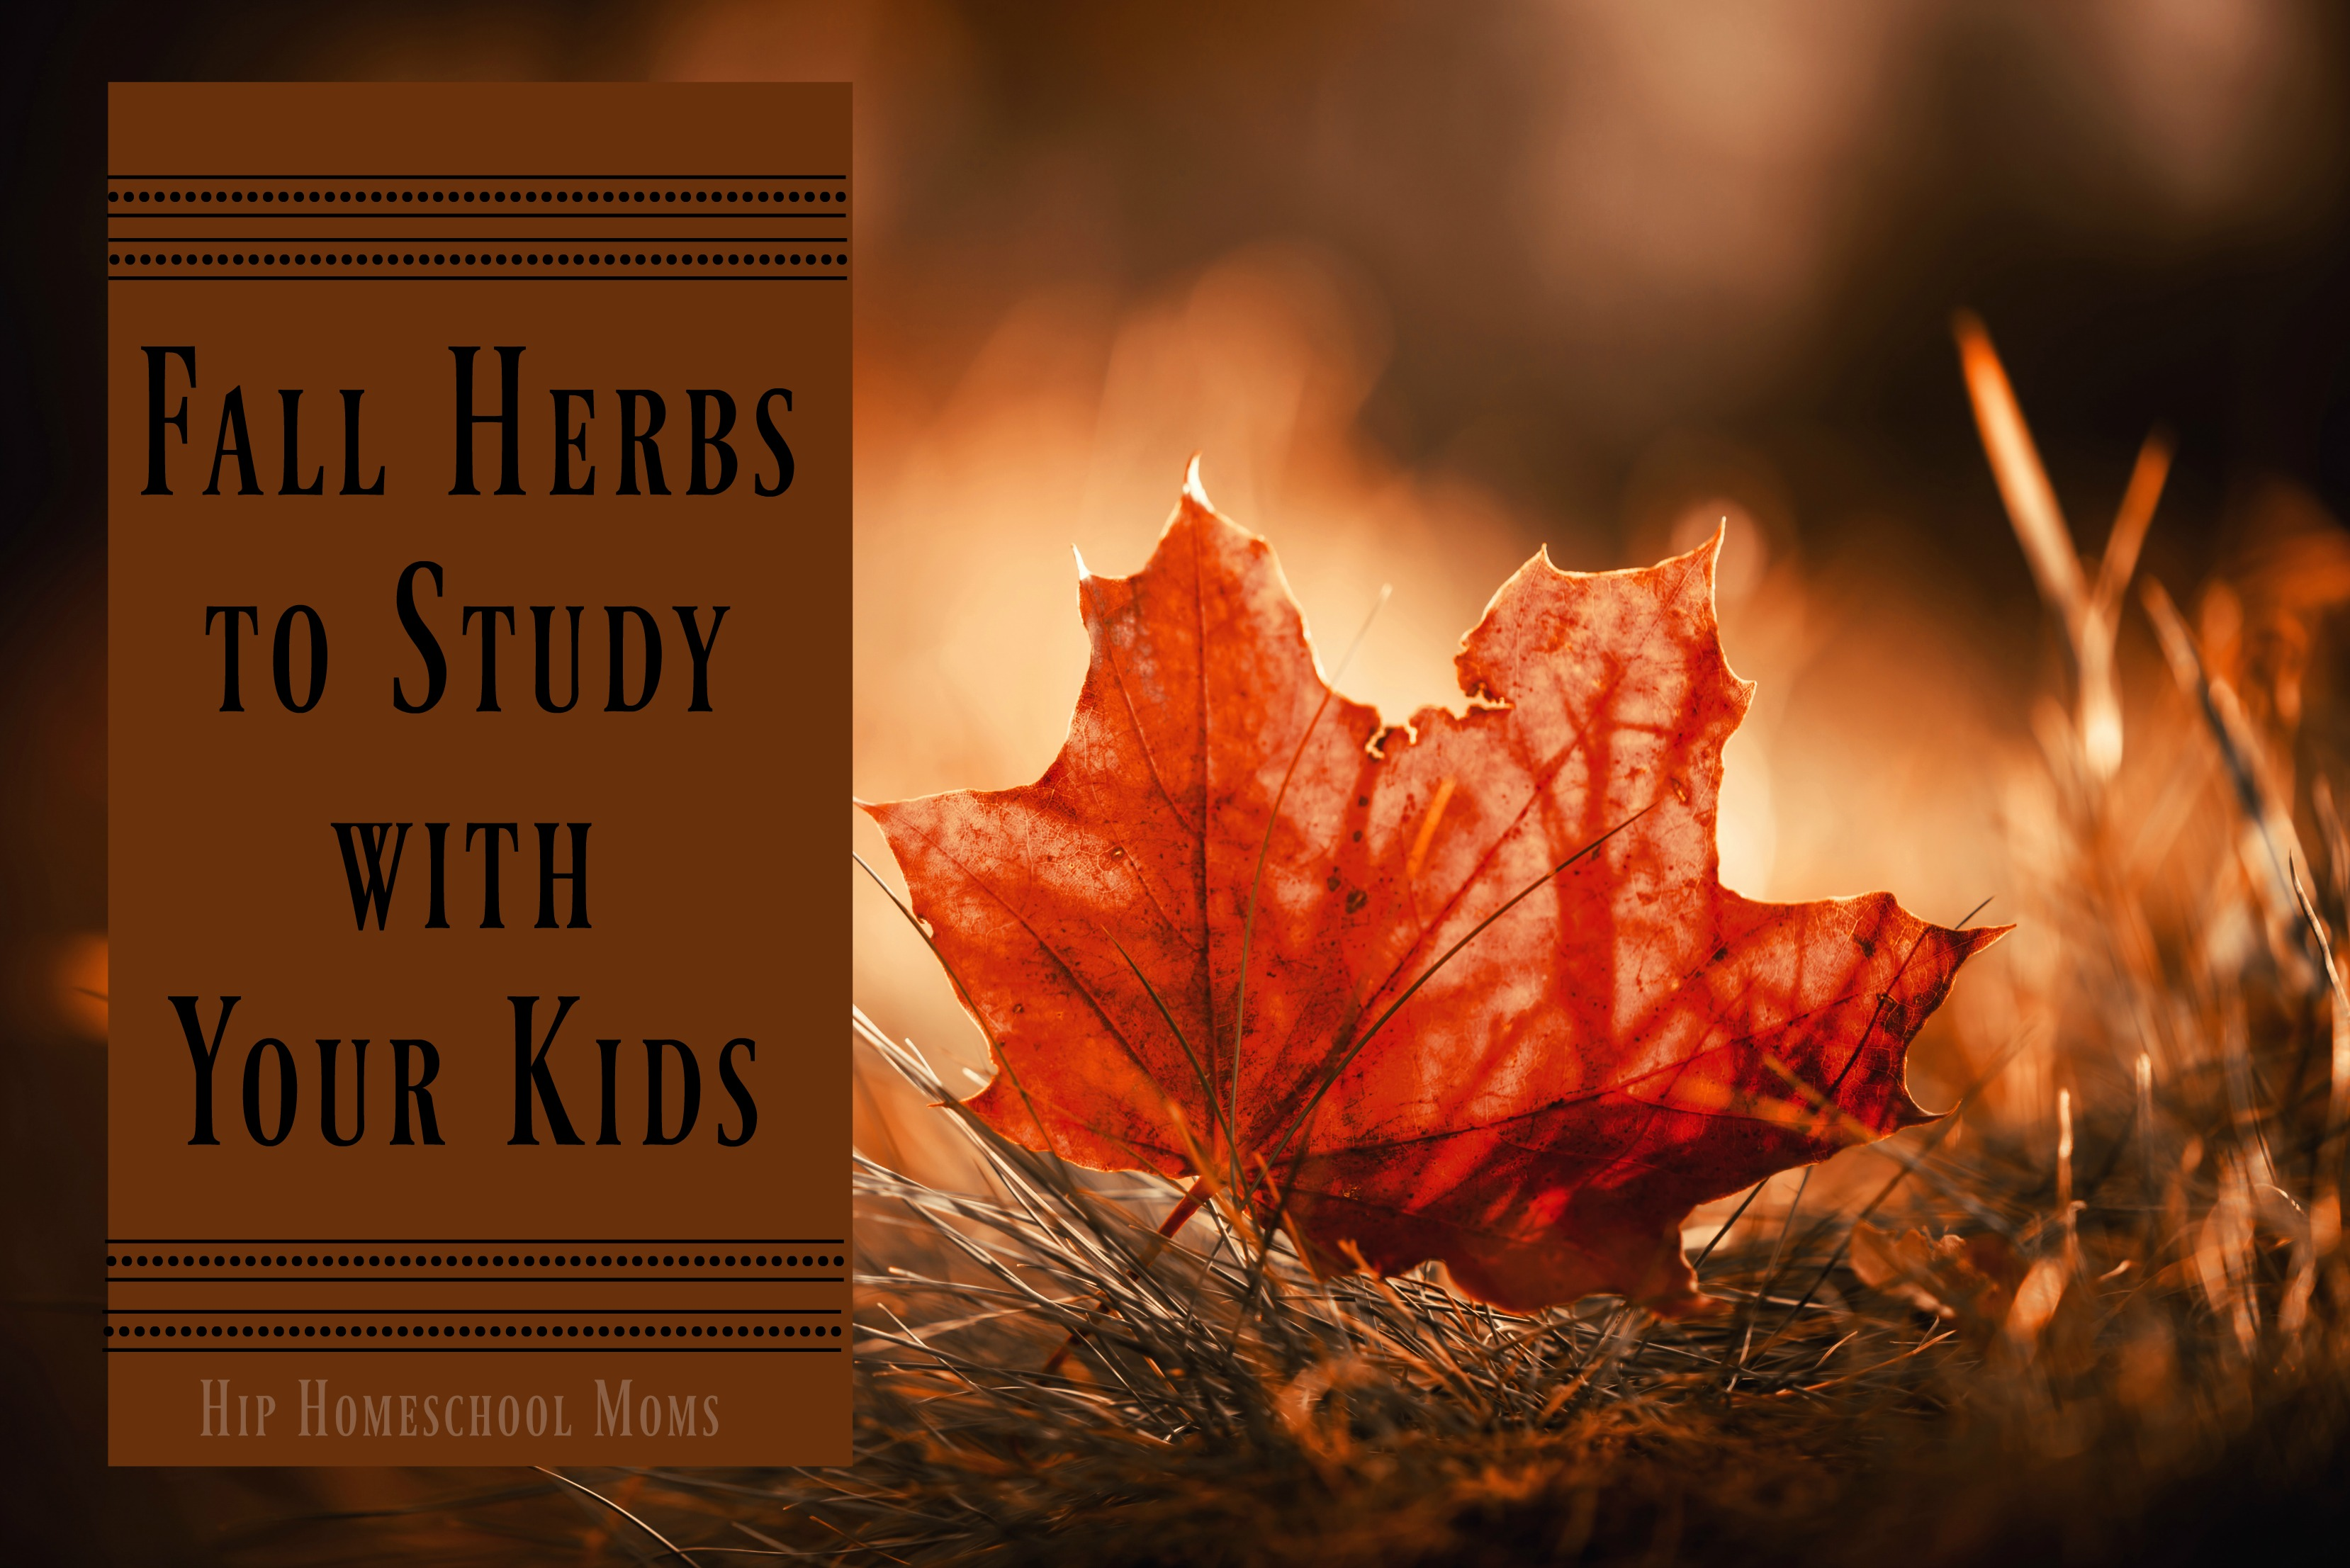 Fall Herbs to Study with Your Kids